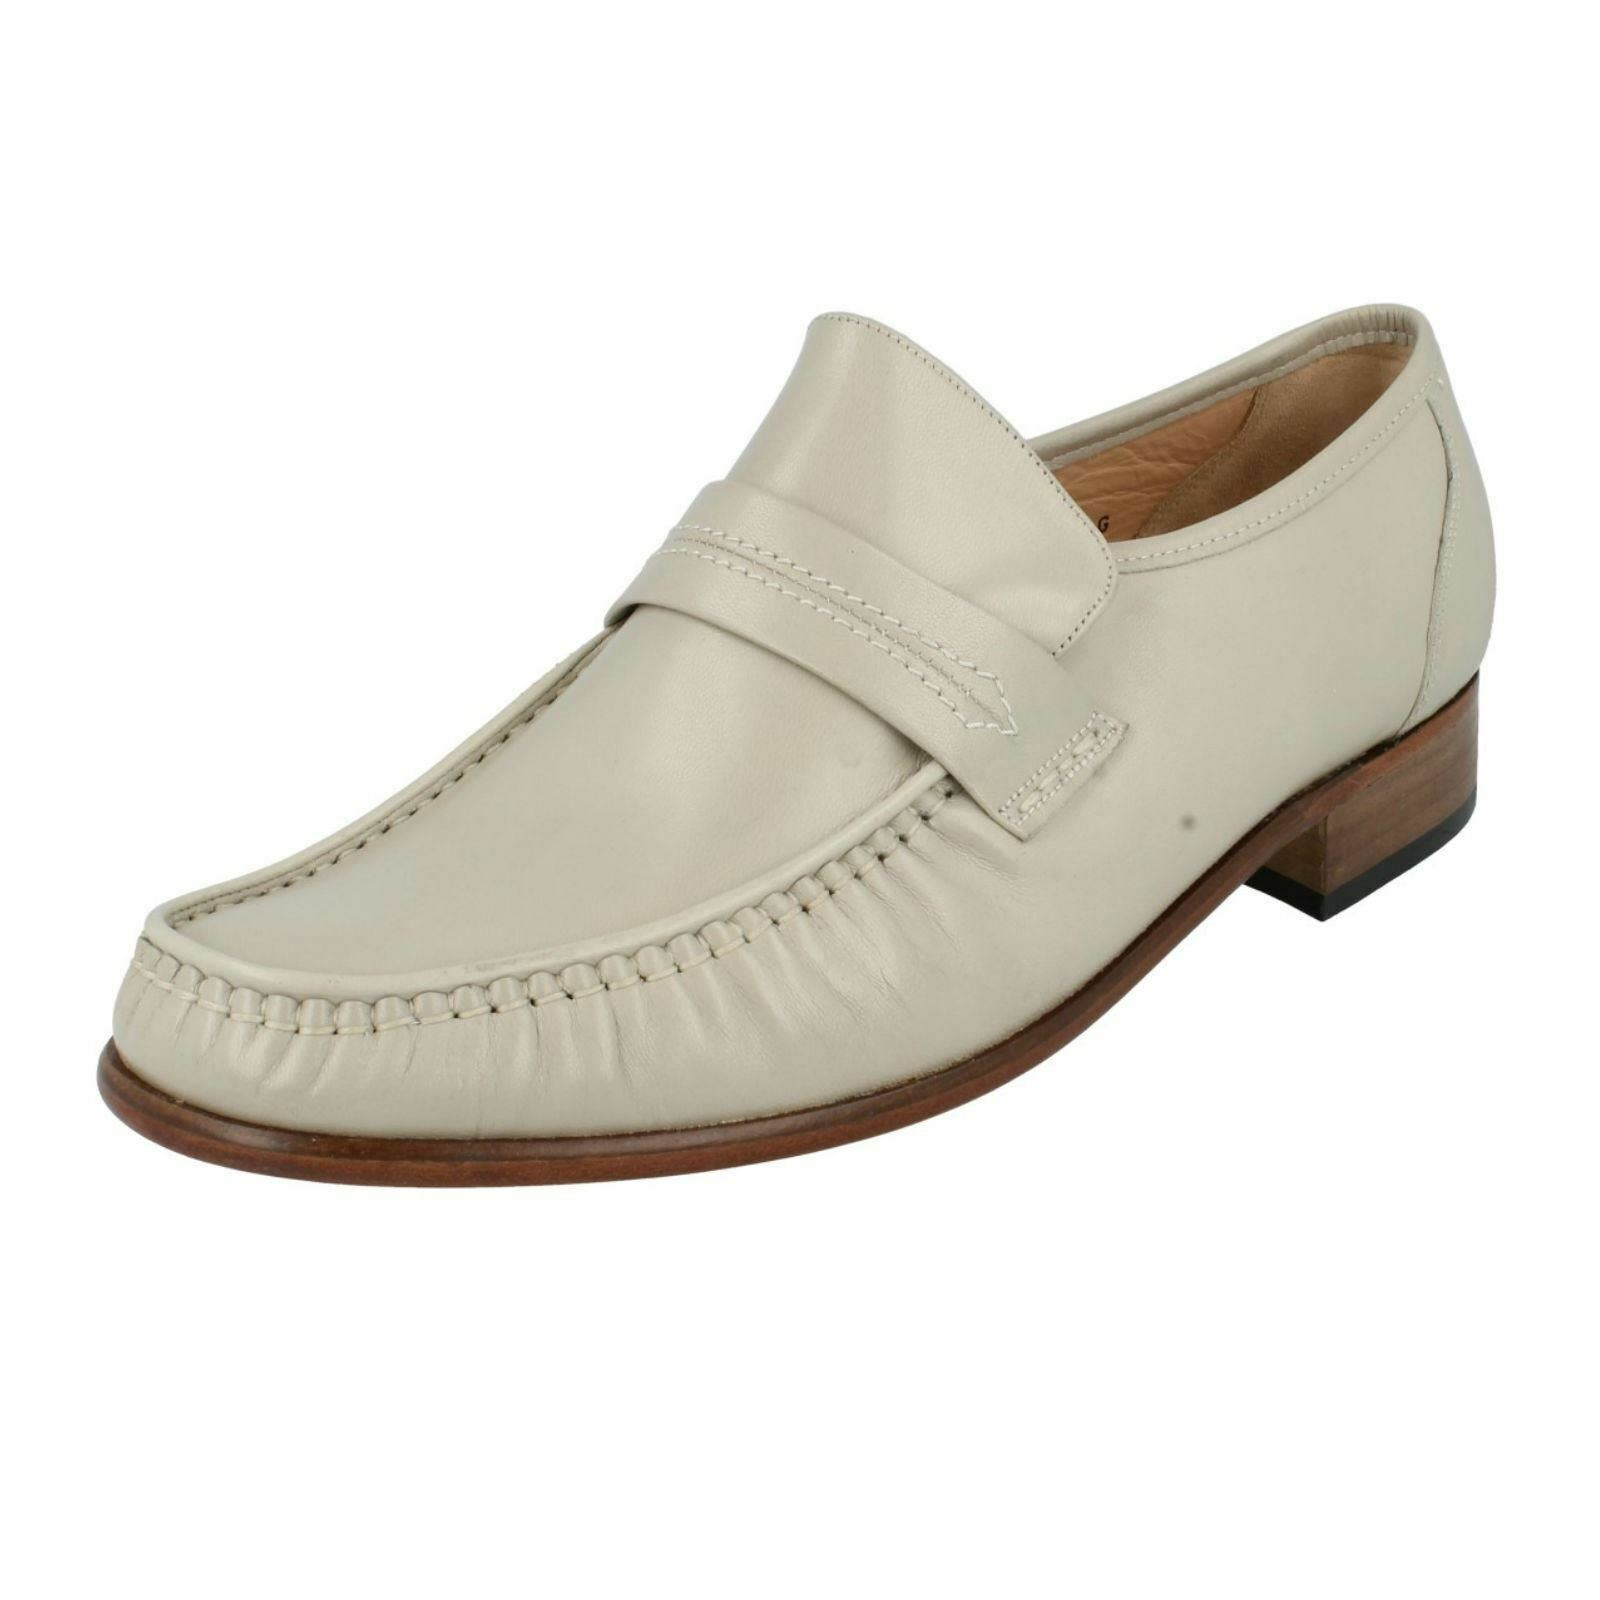 Grenson  WATFORD Mens Ivory Leather Slip-on Moccasin shoes  (38A) (Kett)